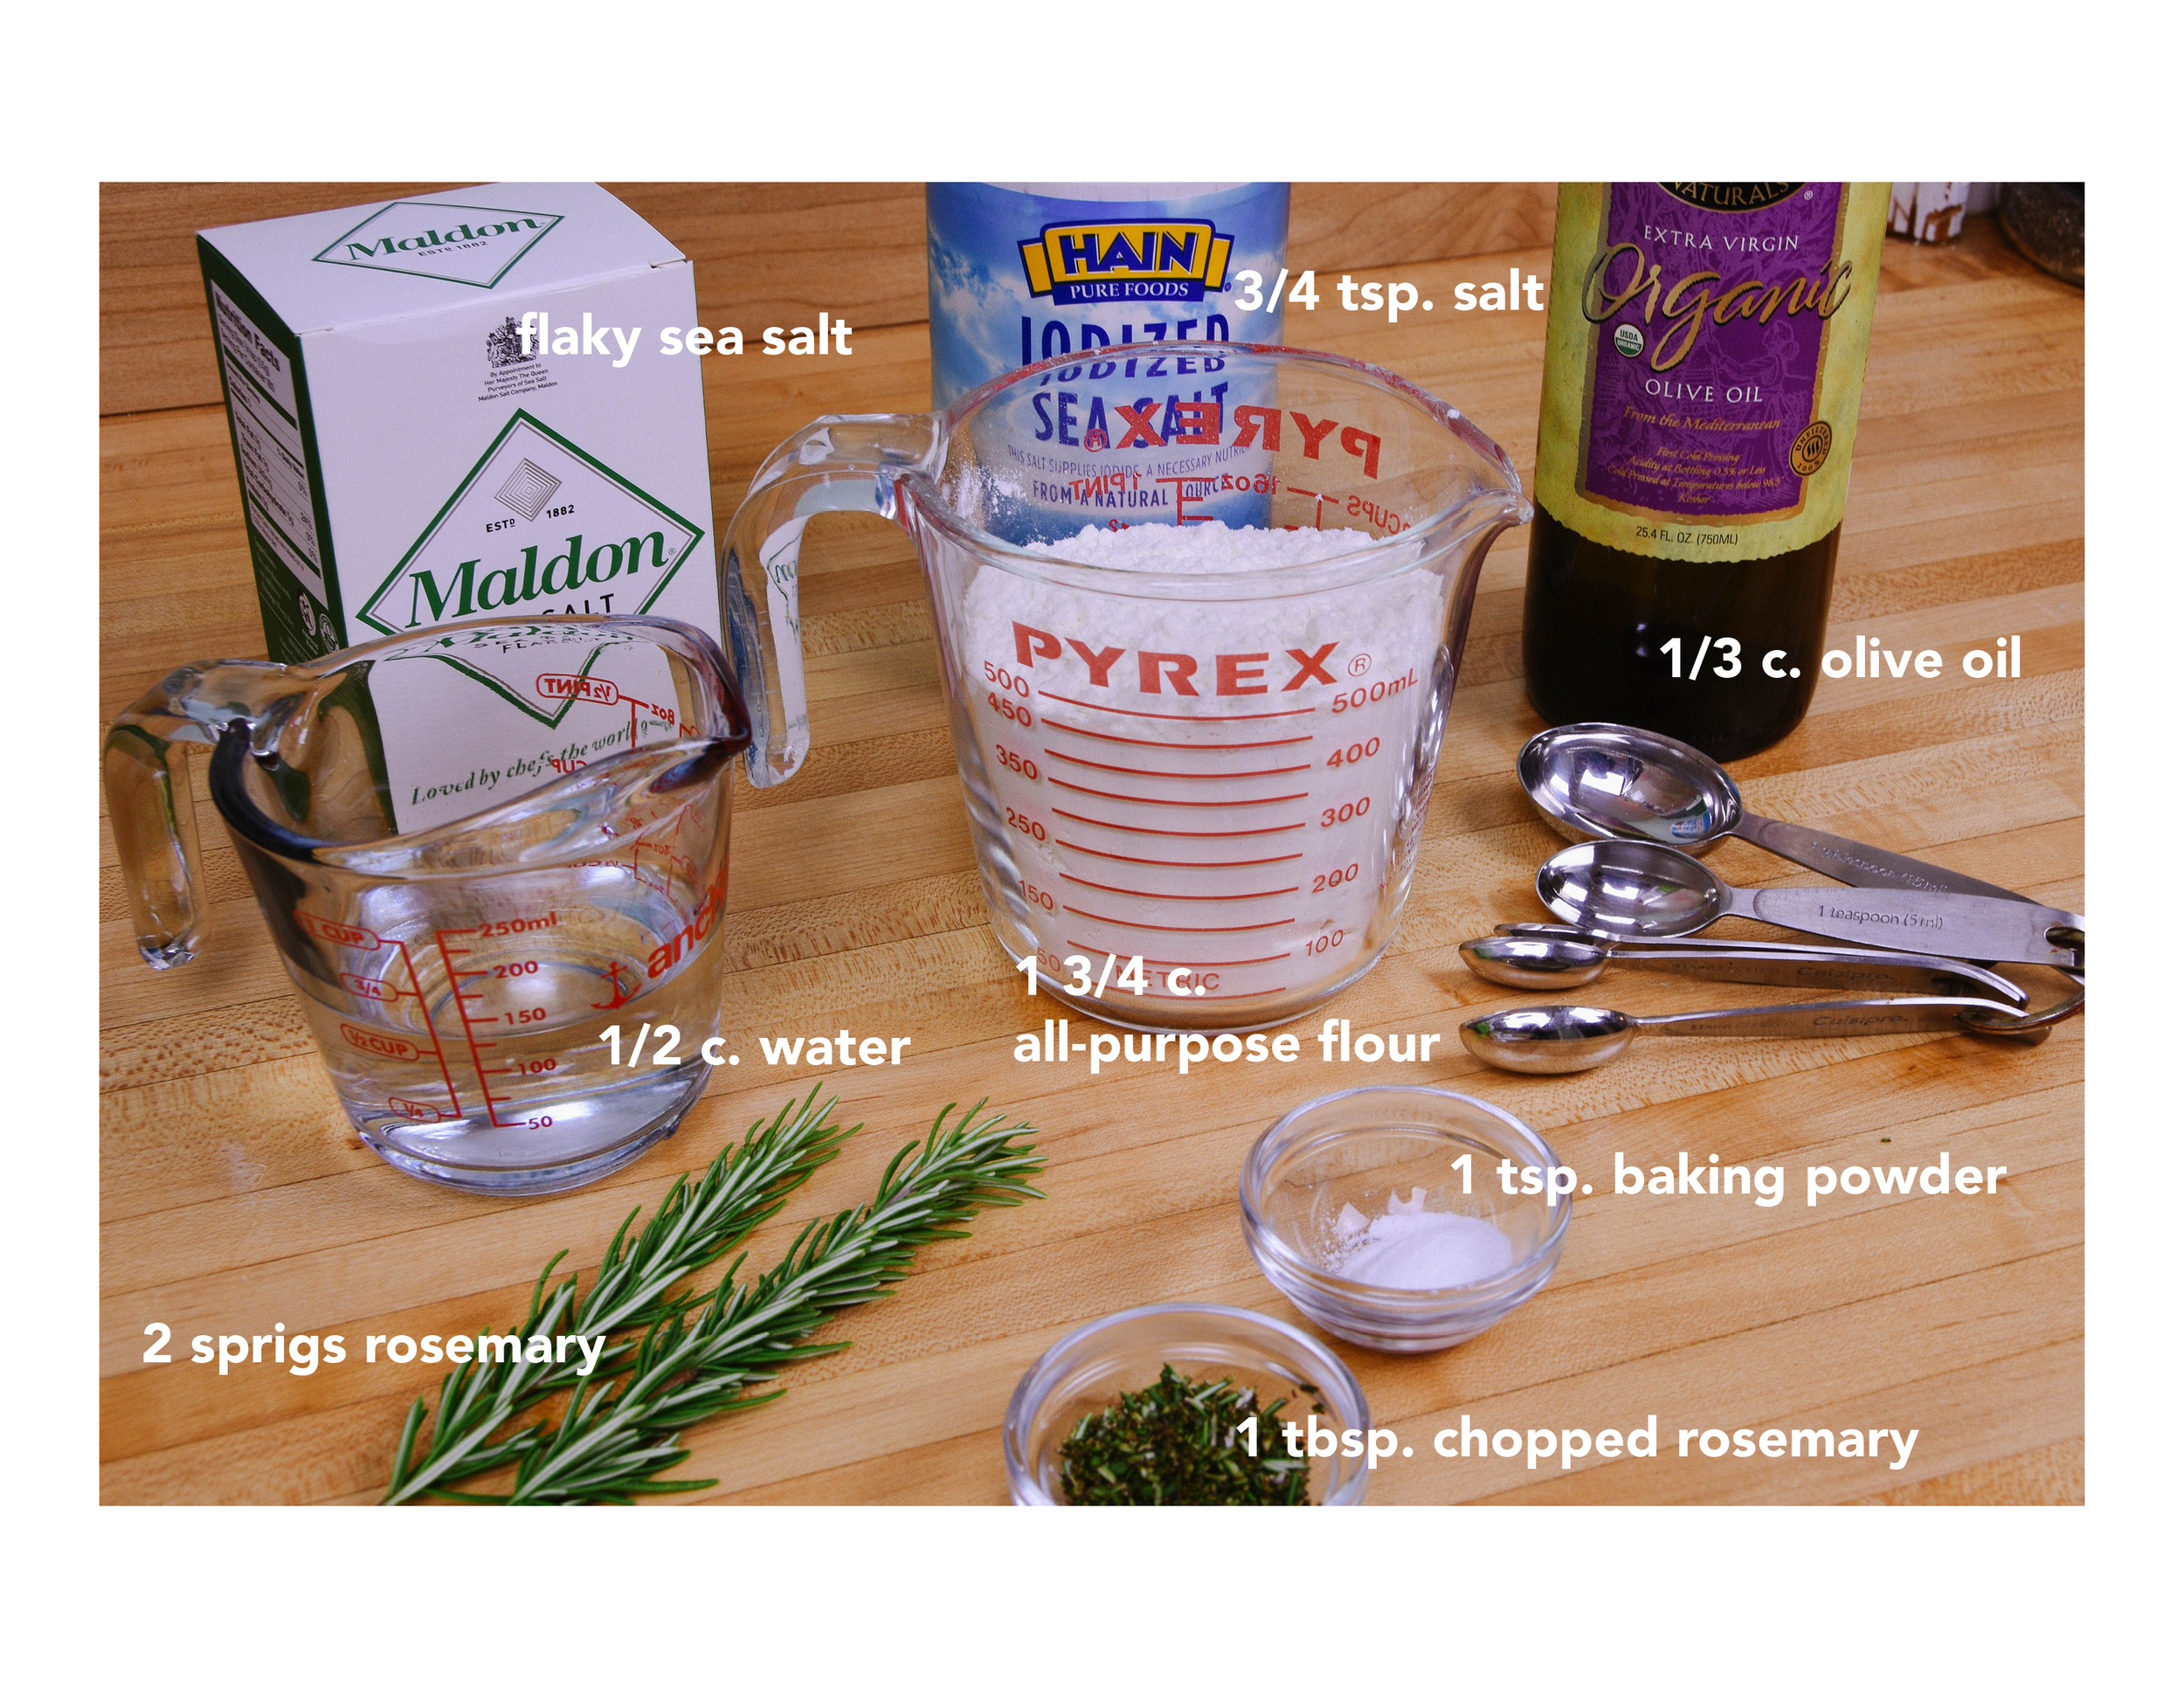 Ingredients:  -1 3/4 cups unbleached all-purpose flour  -1 tablespoon chopped rosemary plus 2 (6-inch) sprigs  -1 teaspoon baking powder  -3/4 teaspoon salt  -1/2 cup water  -1/3 cup olive oil plus more for brushing  -Flaky sea salt such as Maldon